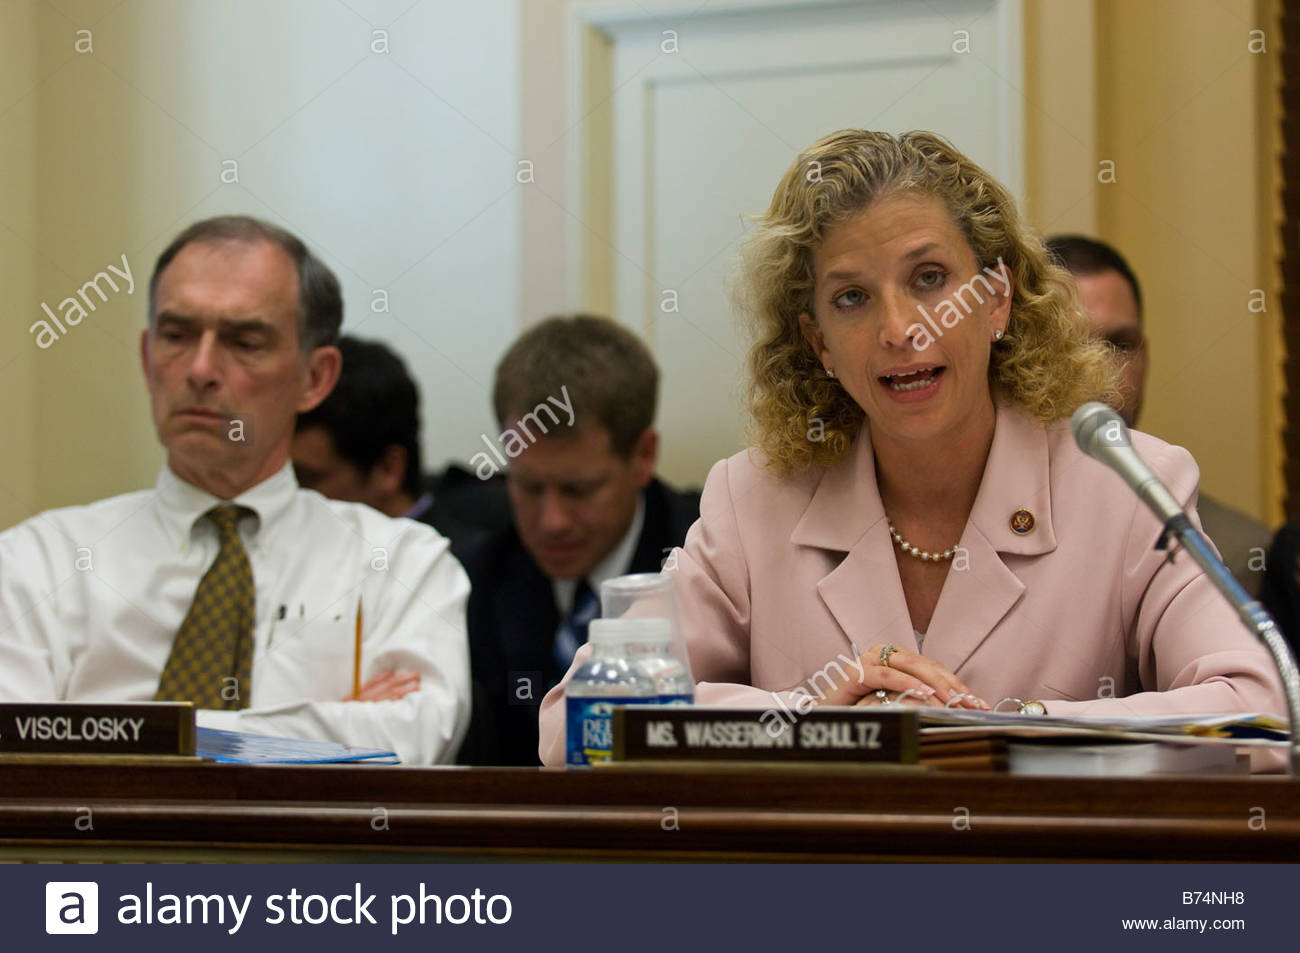 WASHINGTON DC June 17 Rep Peter J Visclosky D Ind and Rep Debbie Wasserman Schultz D Fla during the House Appropriations - Stock Image